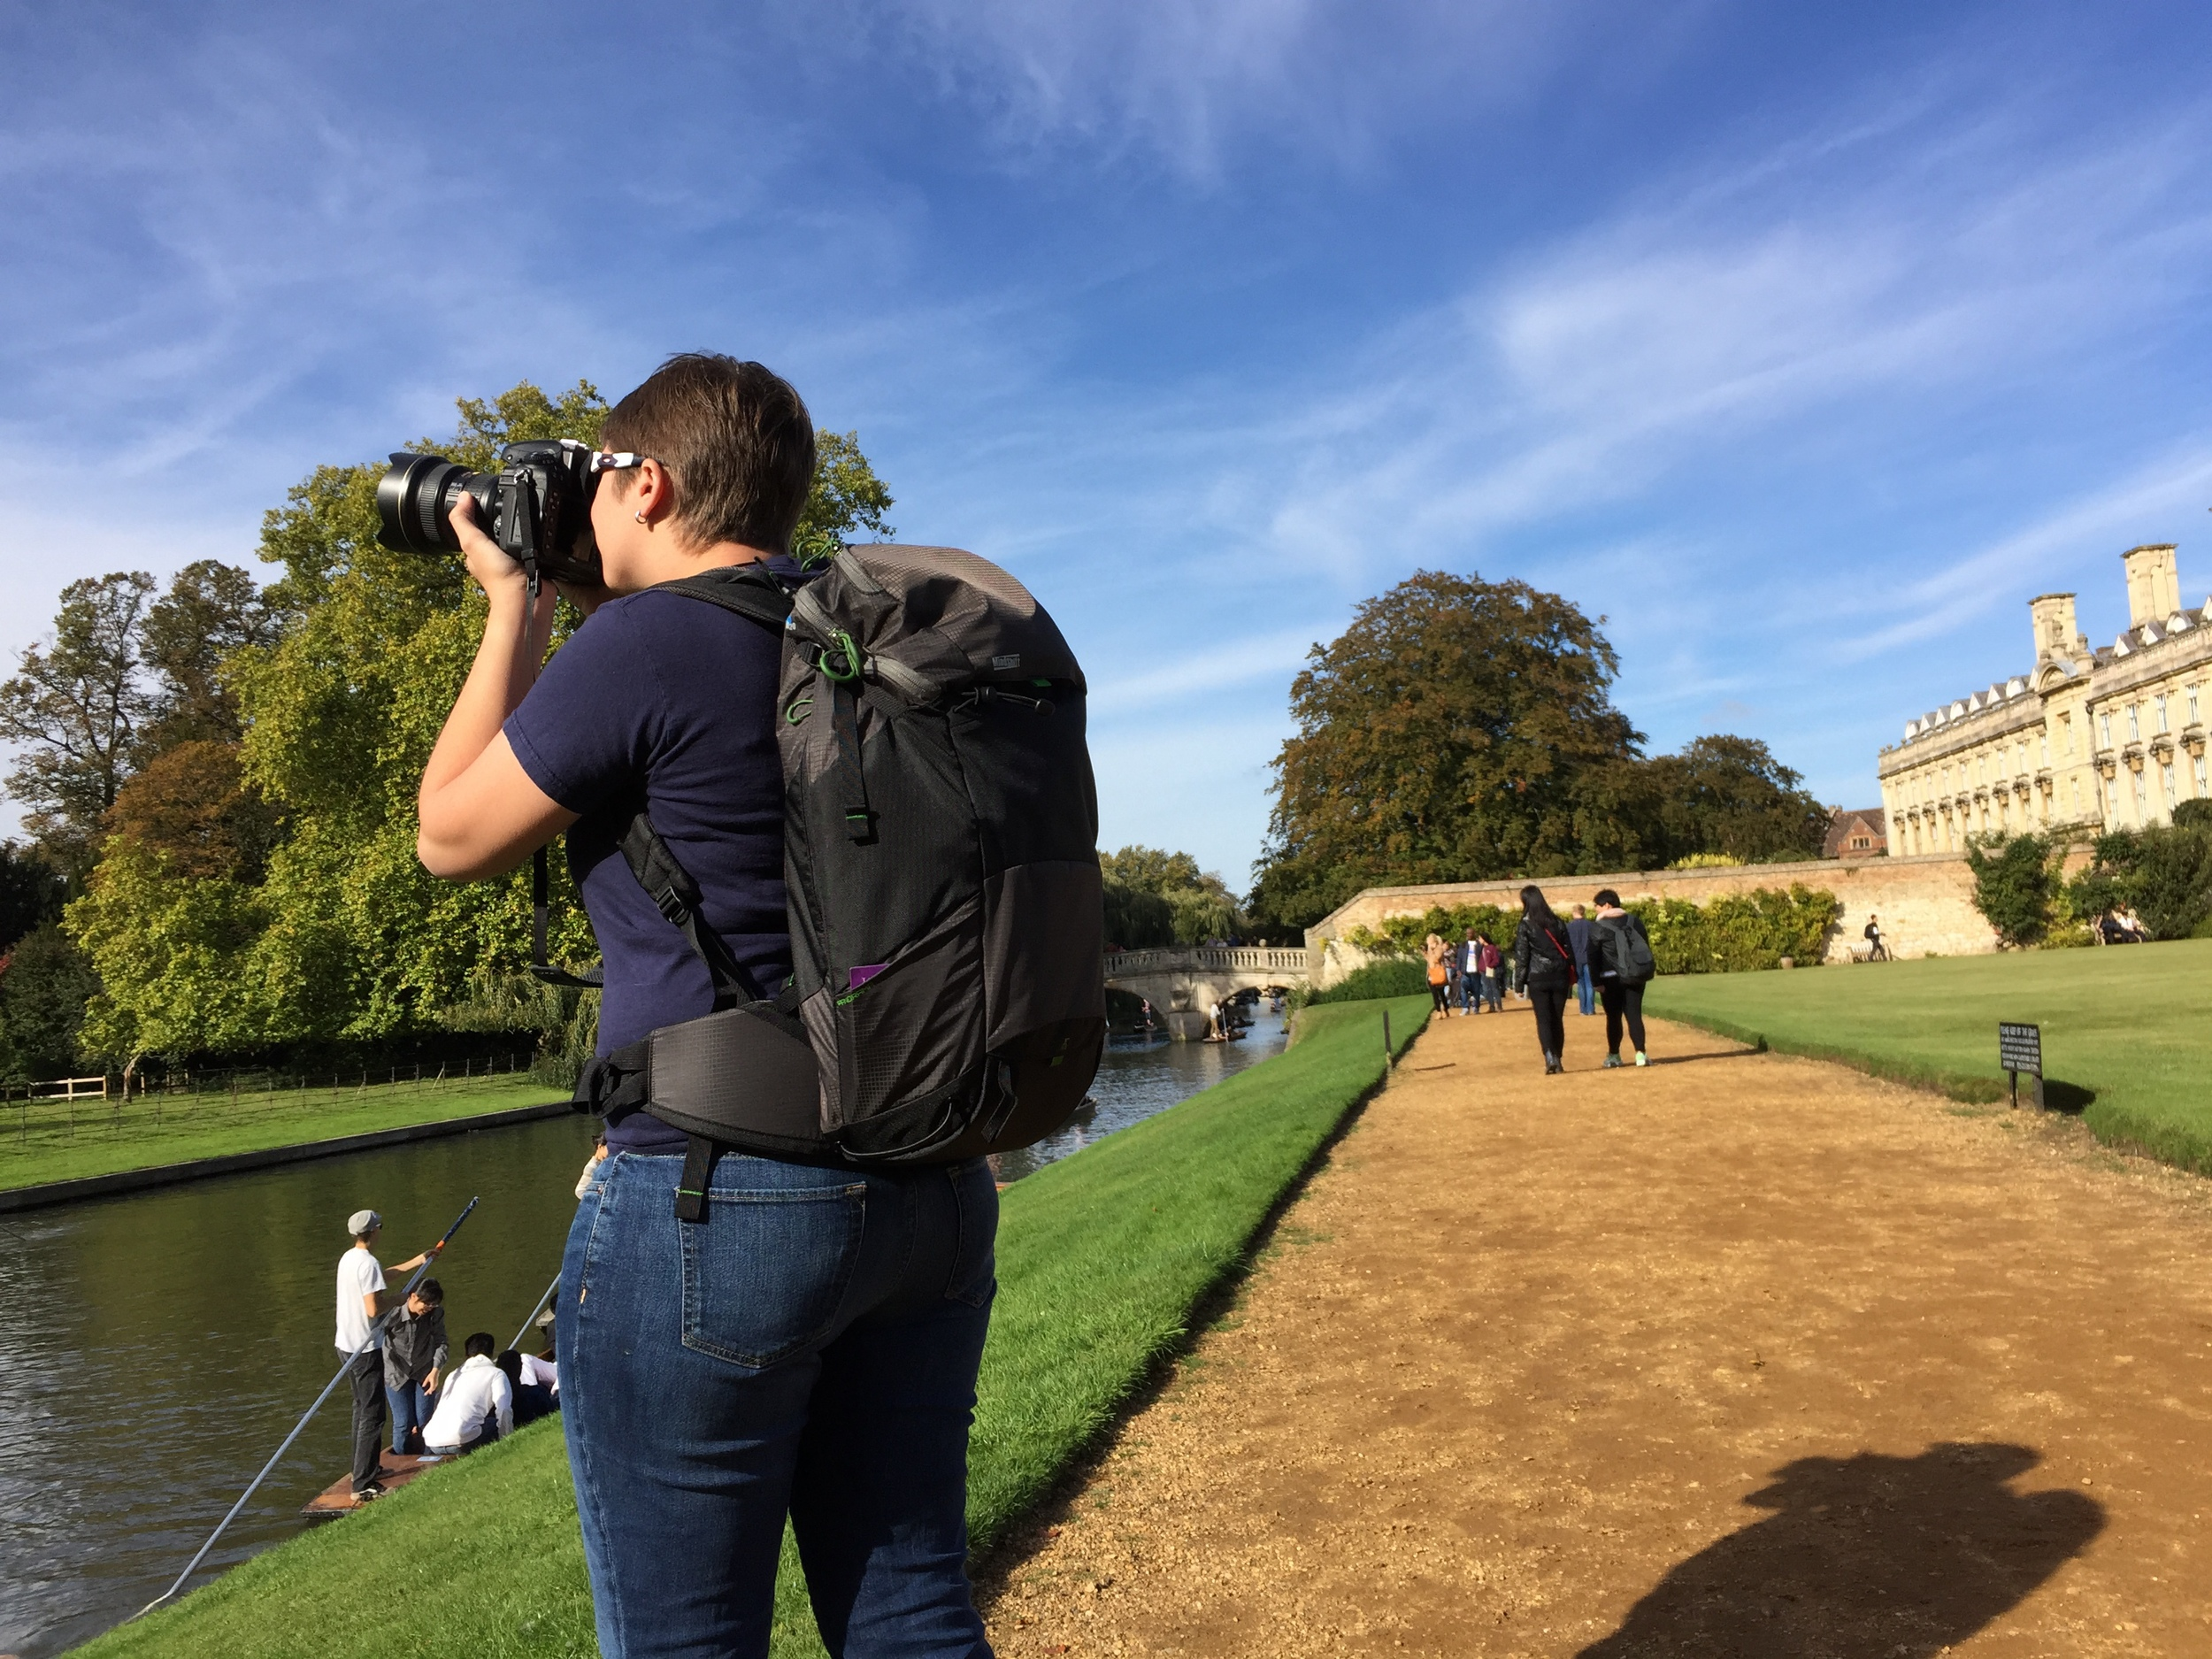 I wanted to get the Rotation 180 Panorama for short day trips like this one through Cambridge, England. The Rotation 180 Professional was just too much bag when I only needed to carry one or two lenses, but the 180 Panorama really excels at filling this niche.